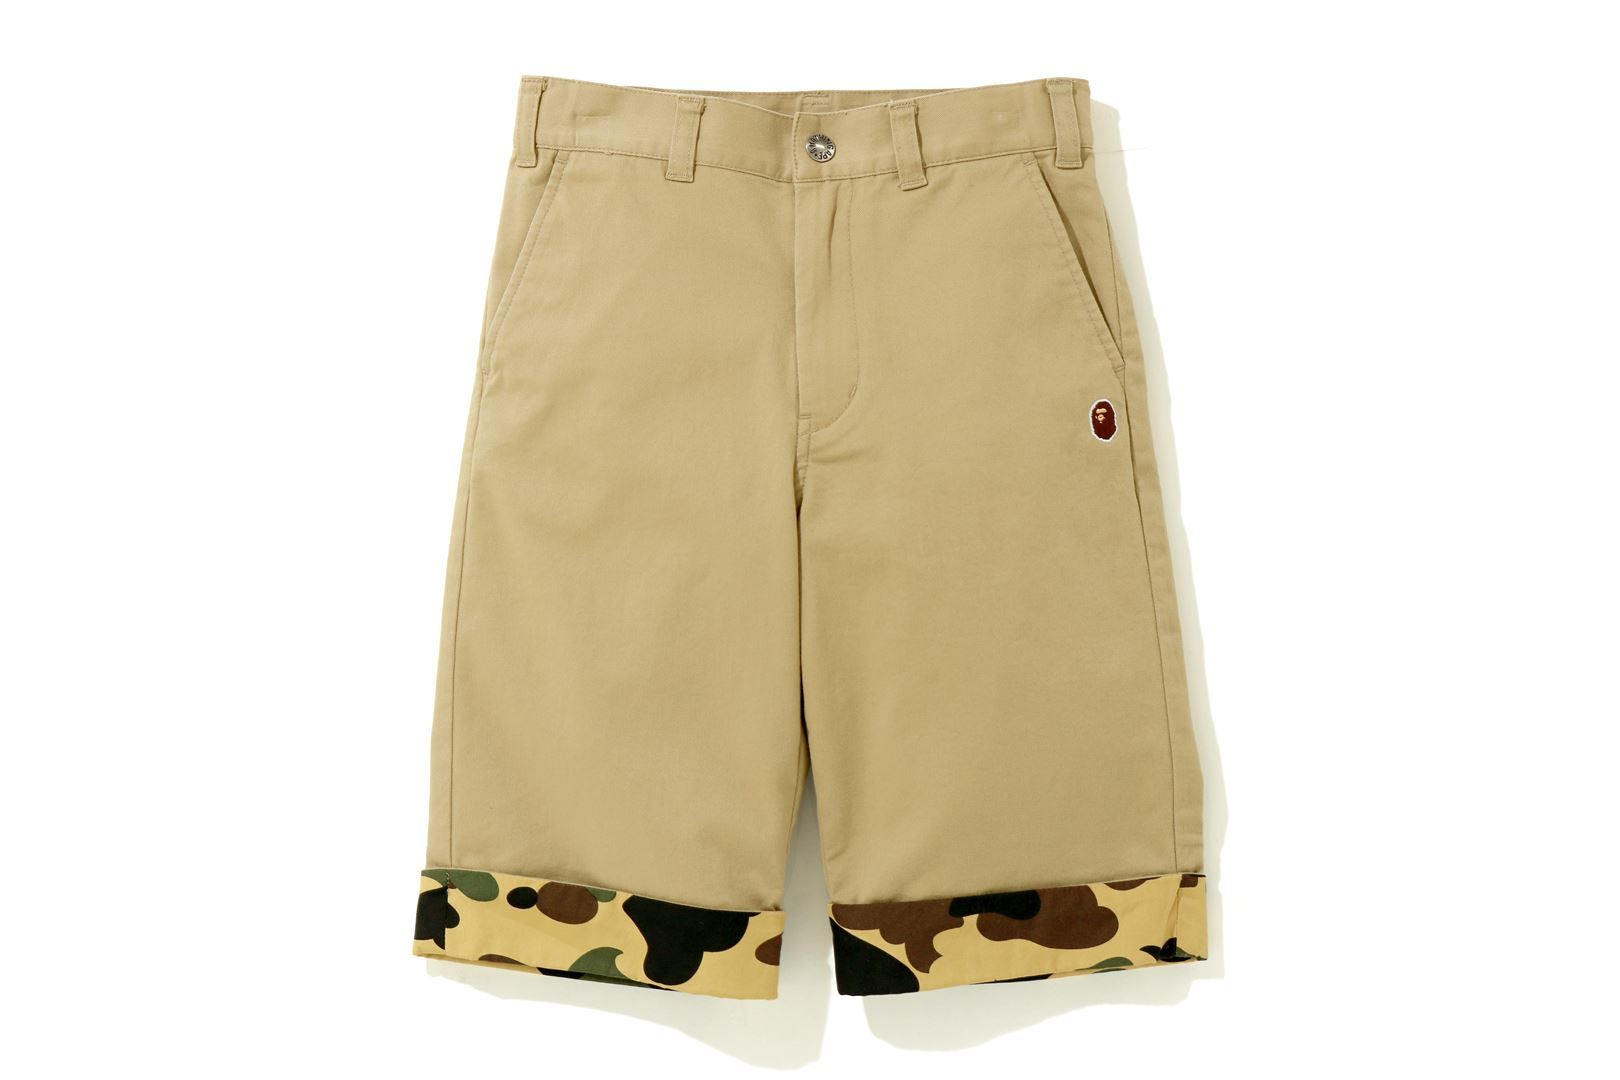 1ST CAMO TRIM CHINO SHORTS_a0174495_13405402.jpg